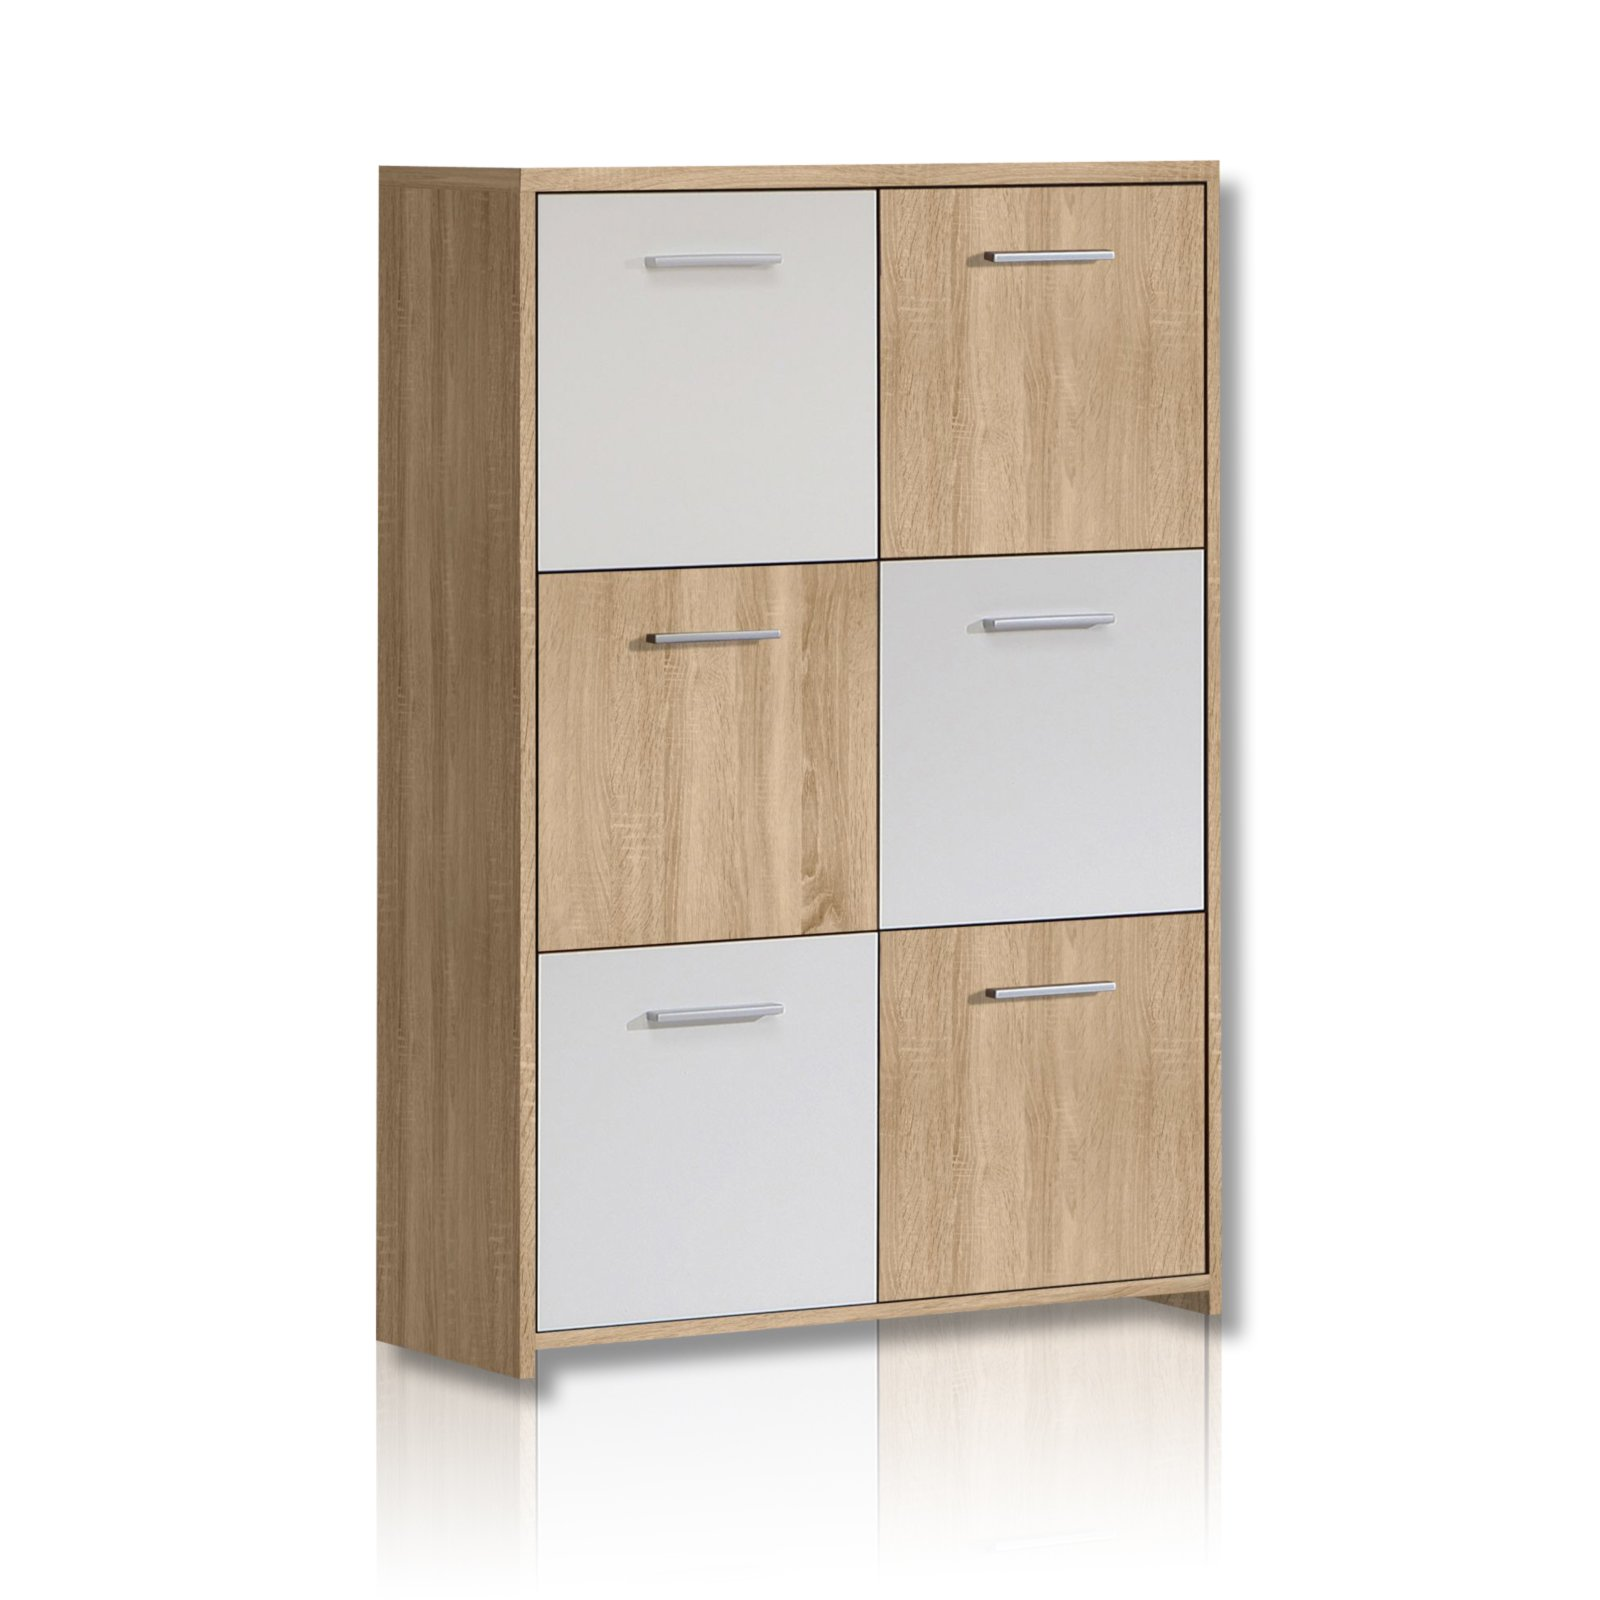 Kommode Quadro Kommode Quadro - Sonoma Eiche-weiß | Kommoden & Sideboards